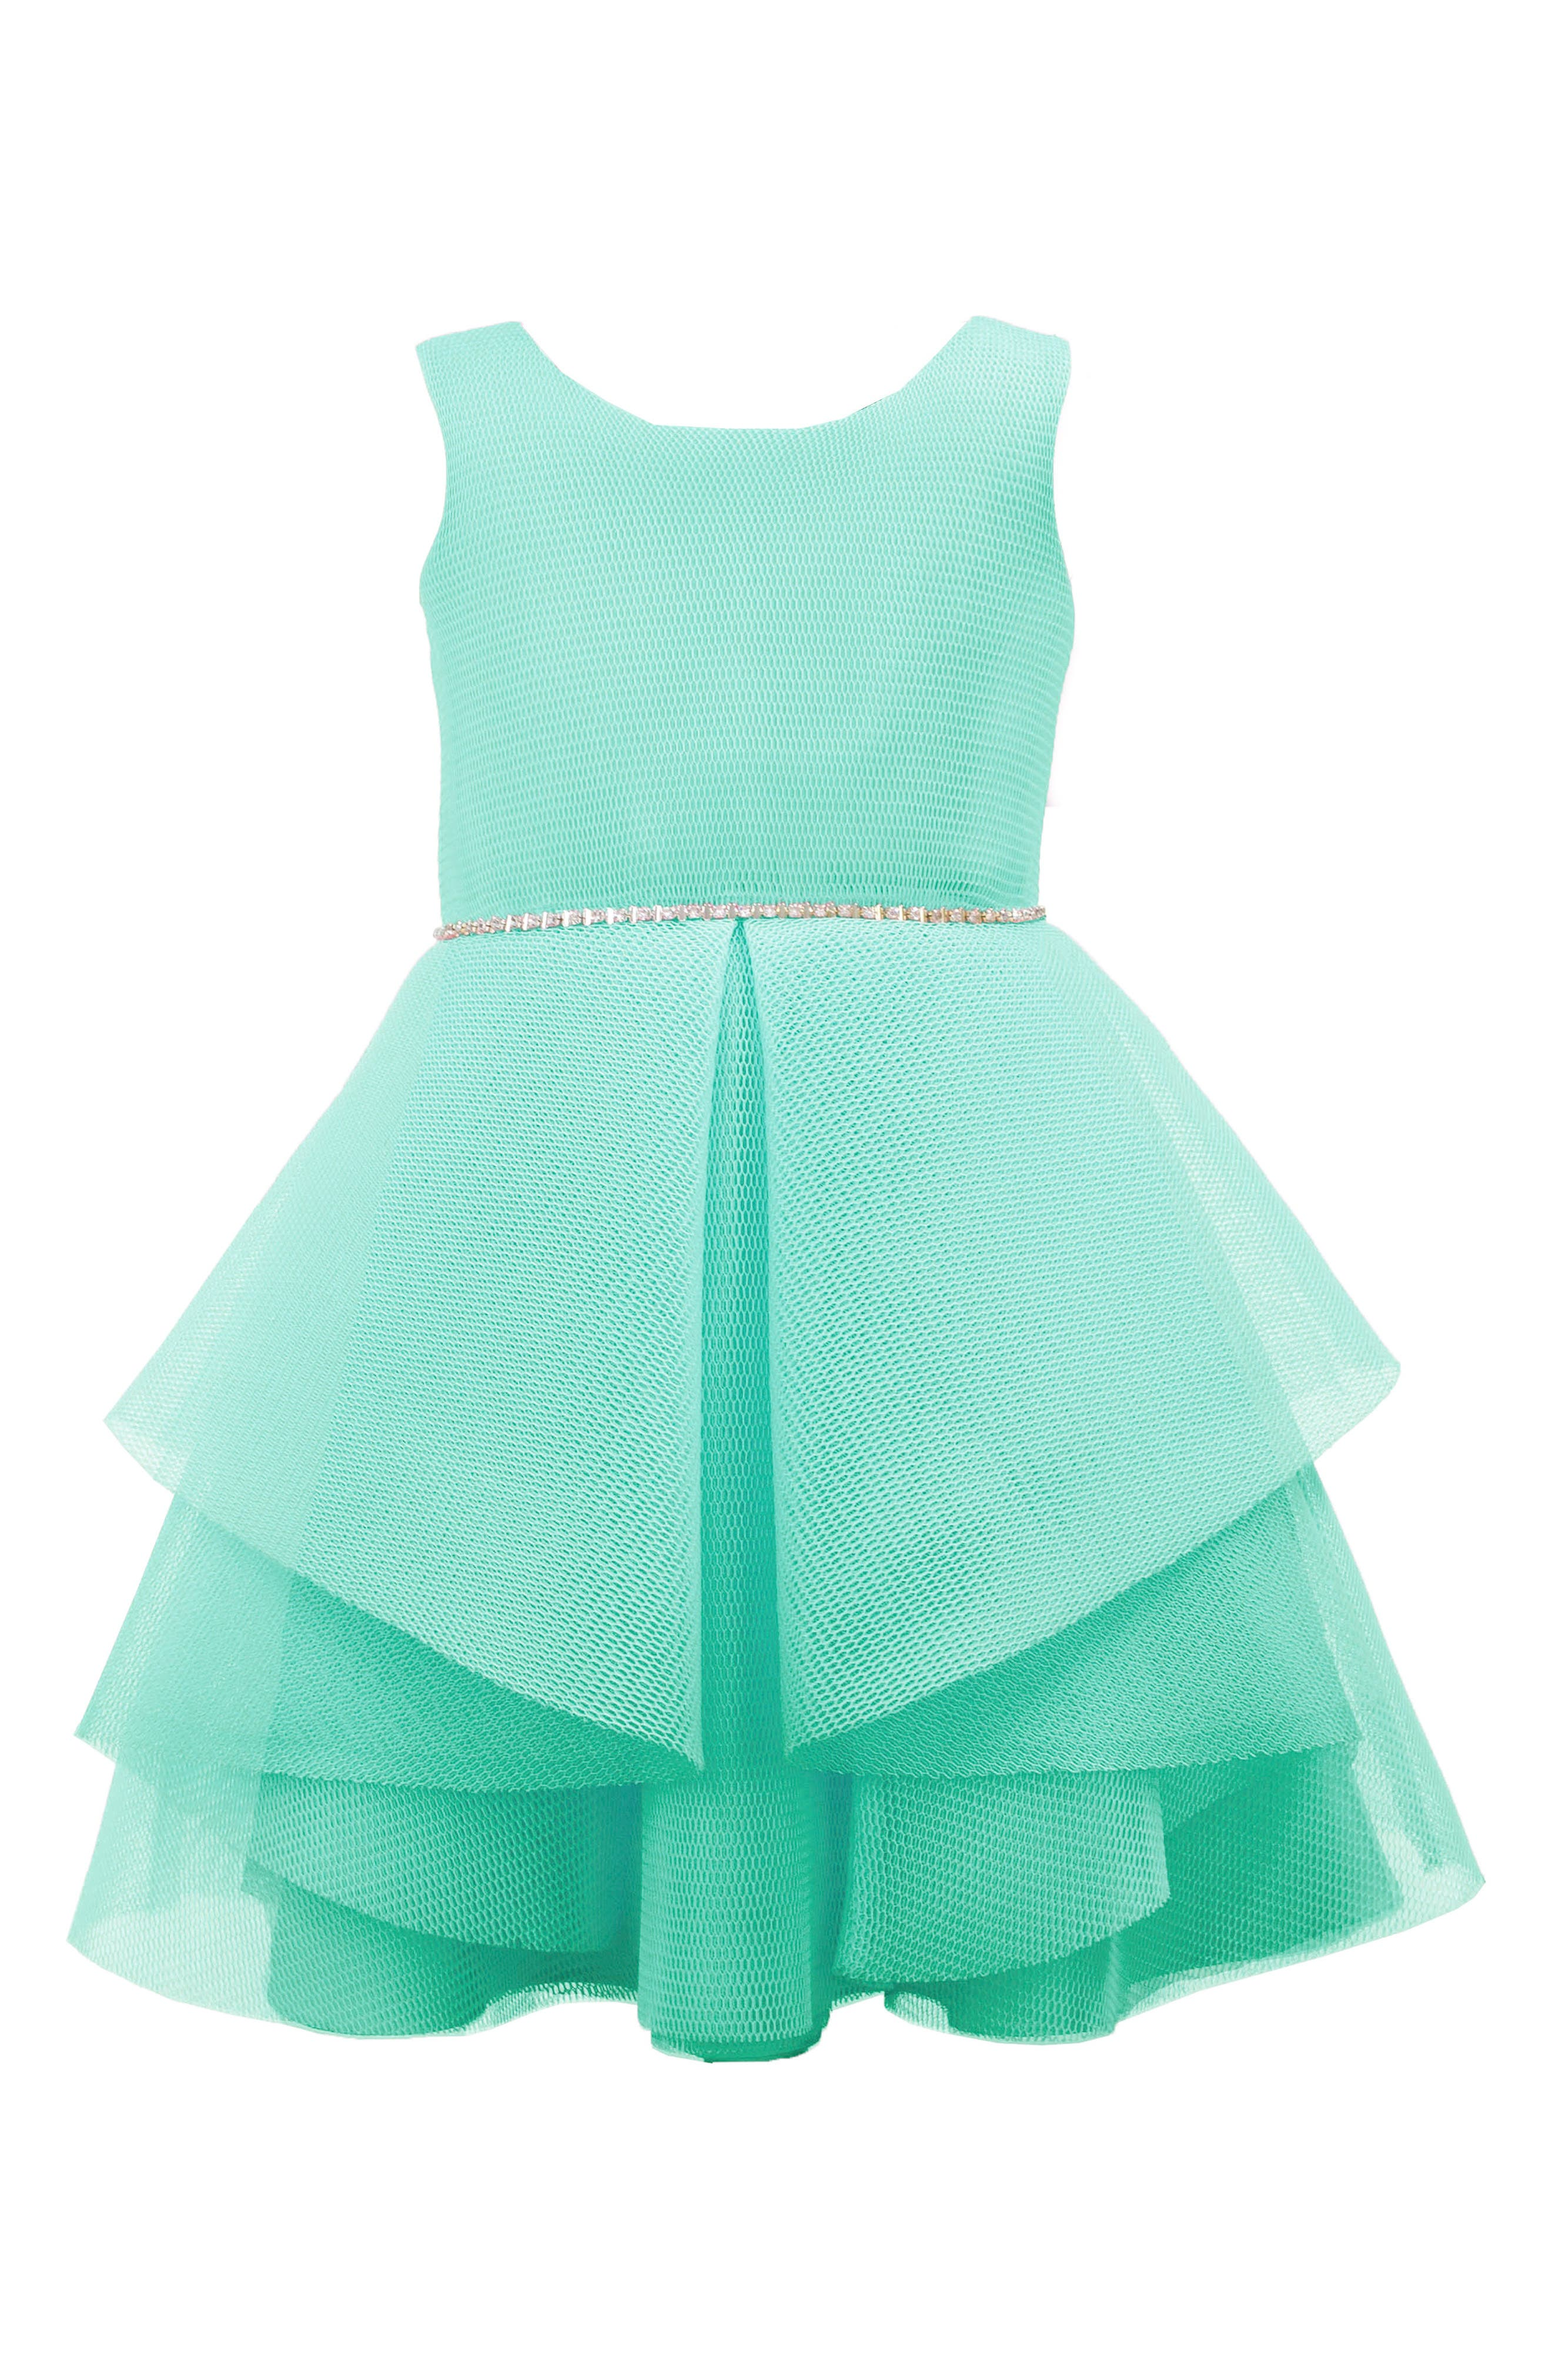 Techno Mesh Fit & Flare Dress,                             Main thumbnail 1, color,                             Turquoise